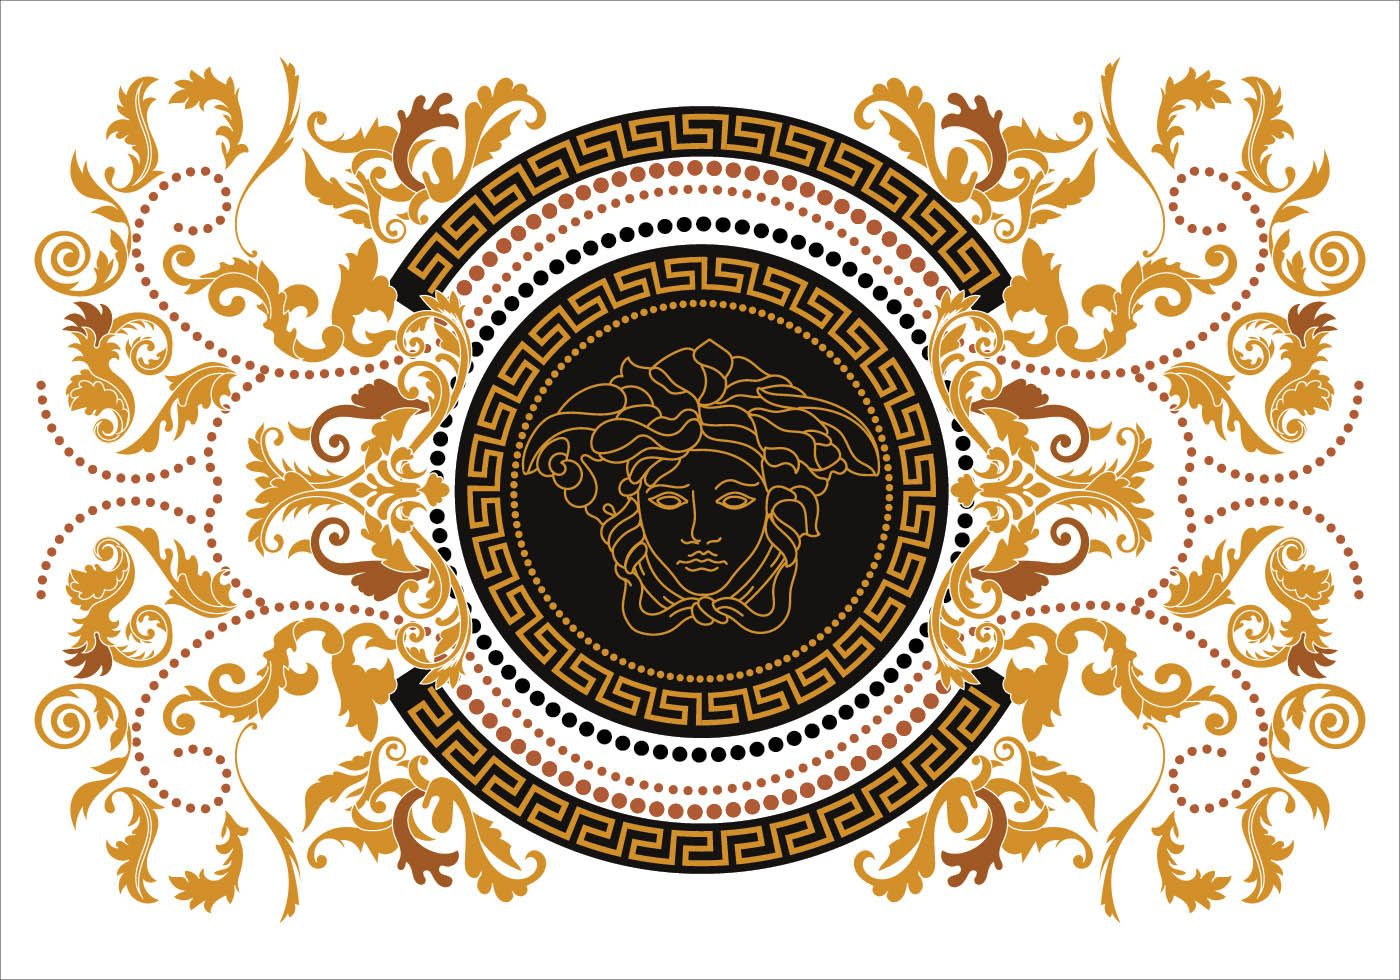 1400x980 Modern Border Vector Illustration Versace Style With Gold Vintage